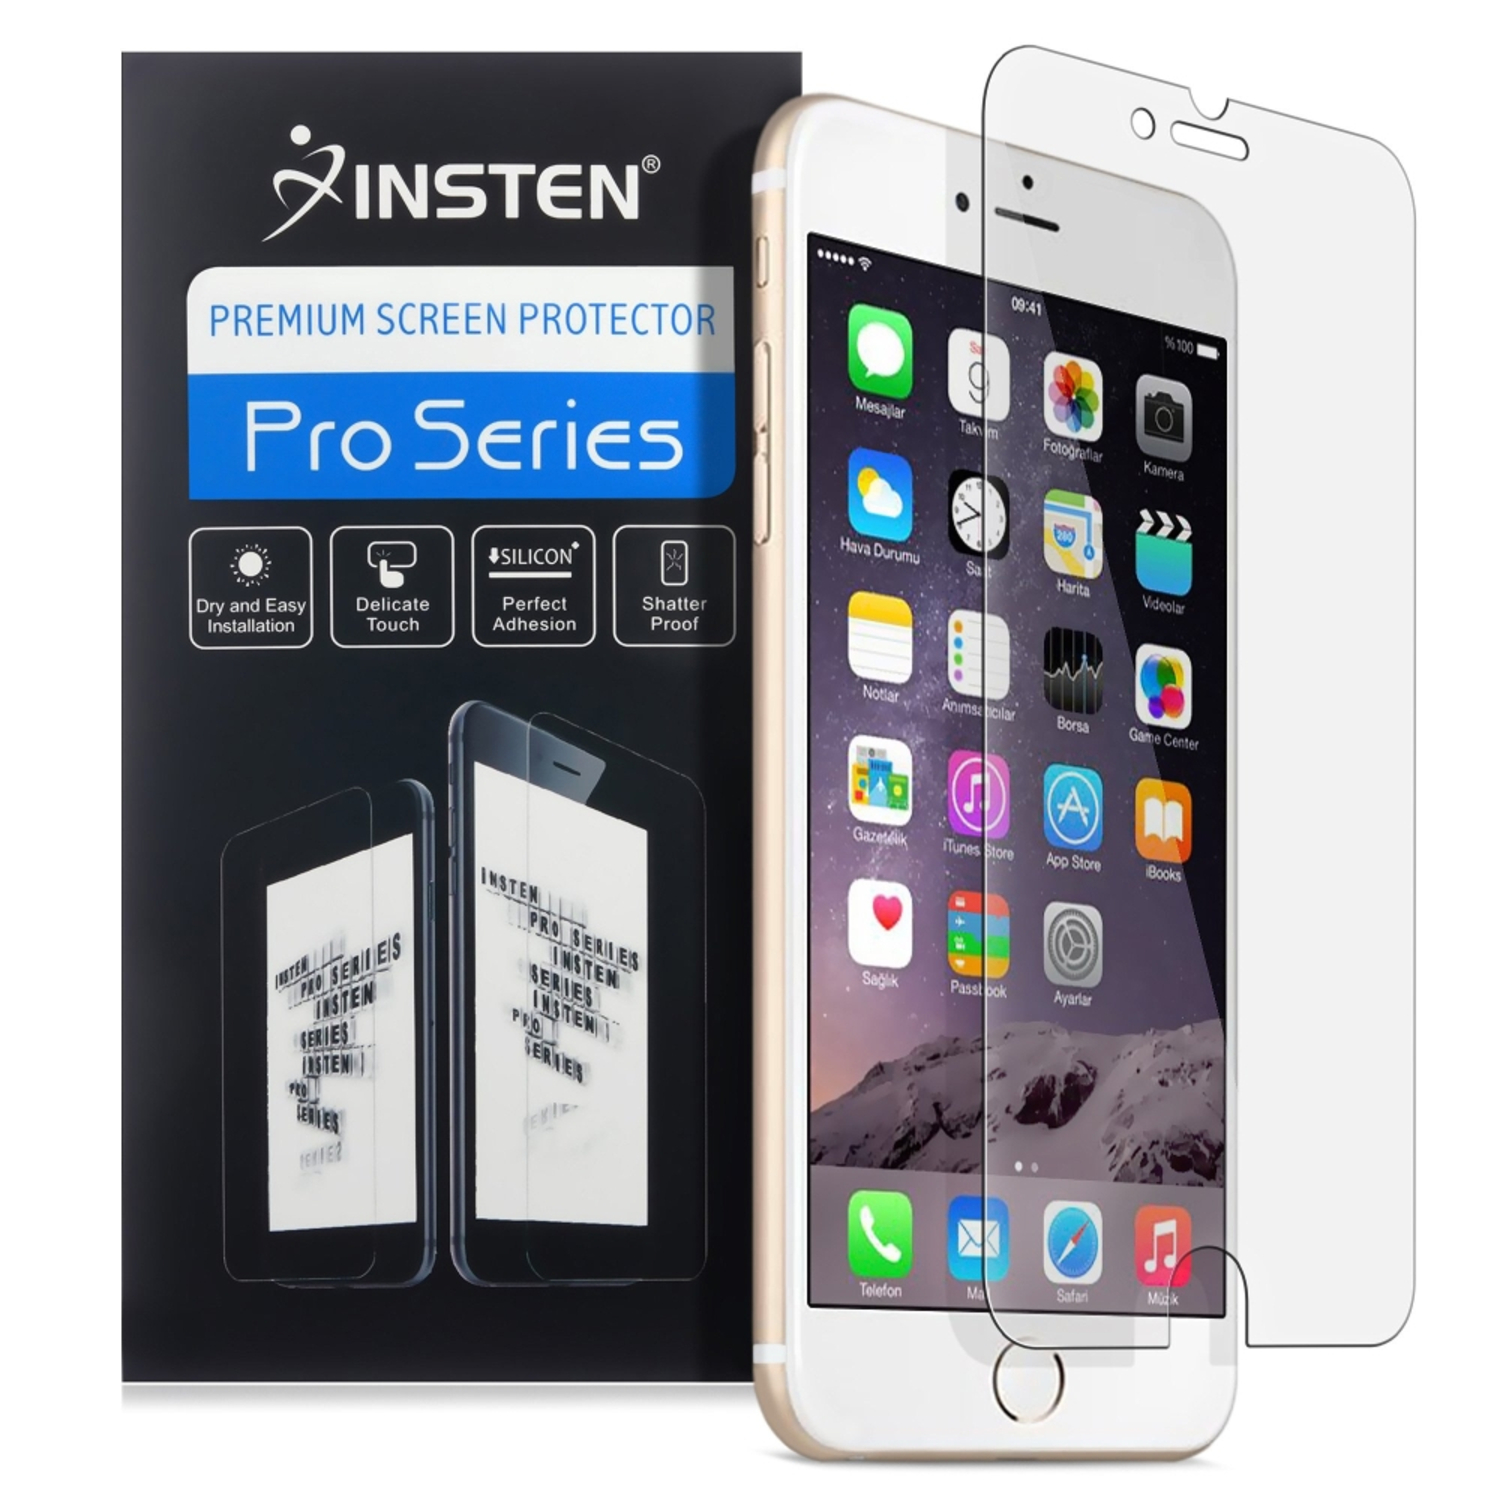 Insten (2-pack) Ultra Clear HD Screen Protector Guard For Apple iPhone 8 Plus / iPhone 7 Plus 5.5 Inch